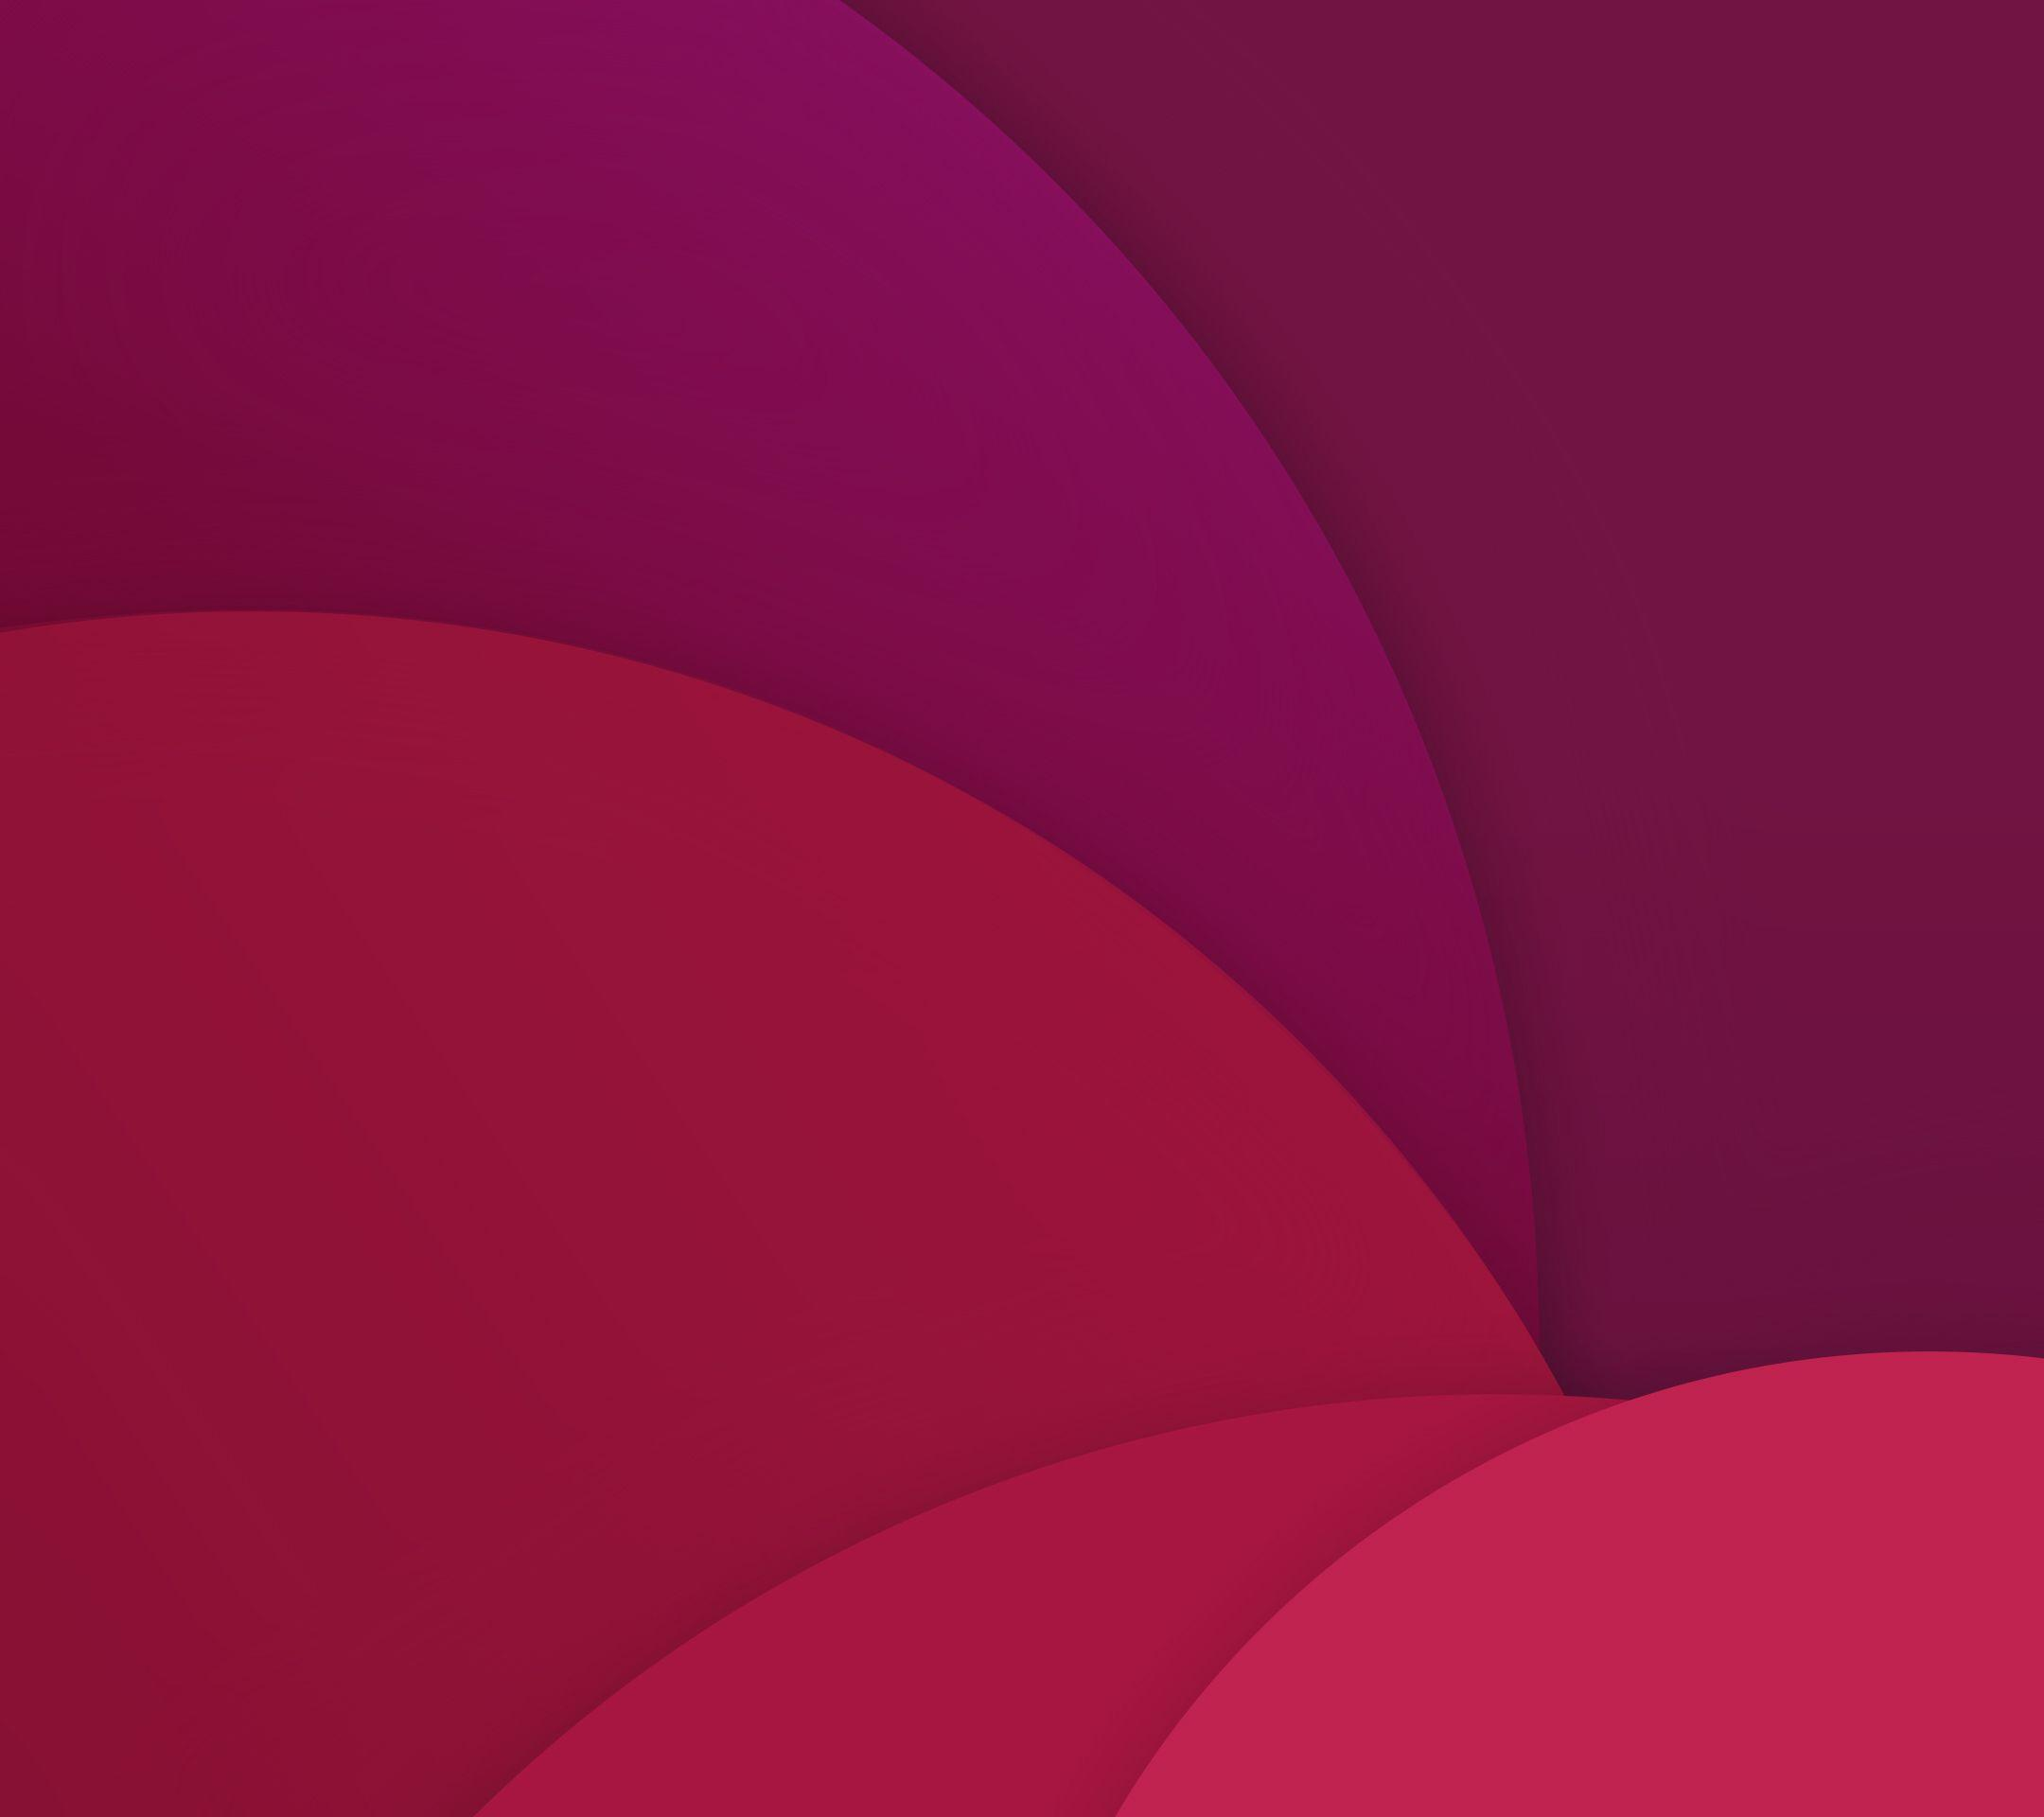 LG G Flex 2 full-res wallpapers - image from Download all LG G ...